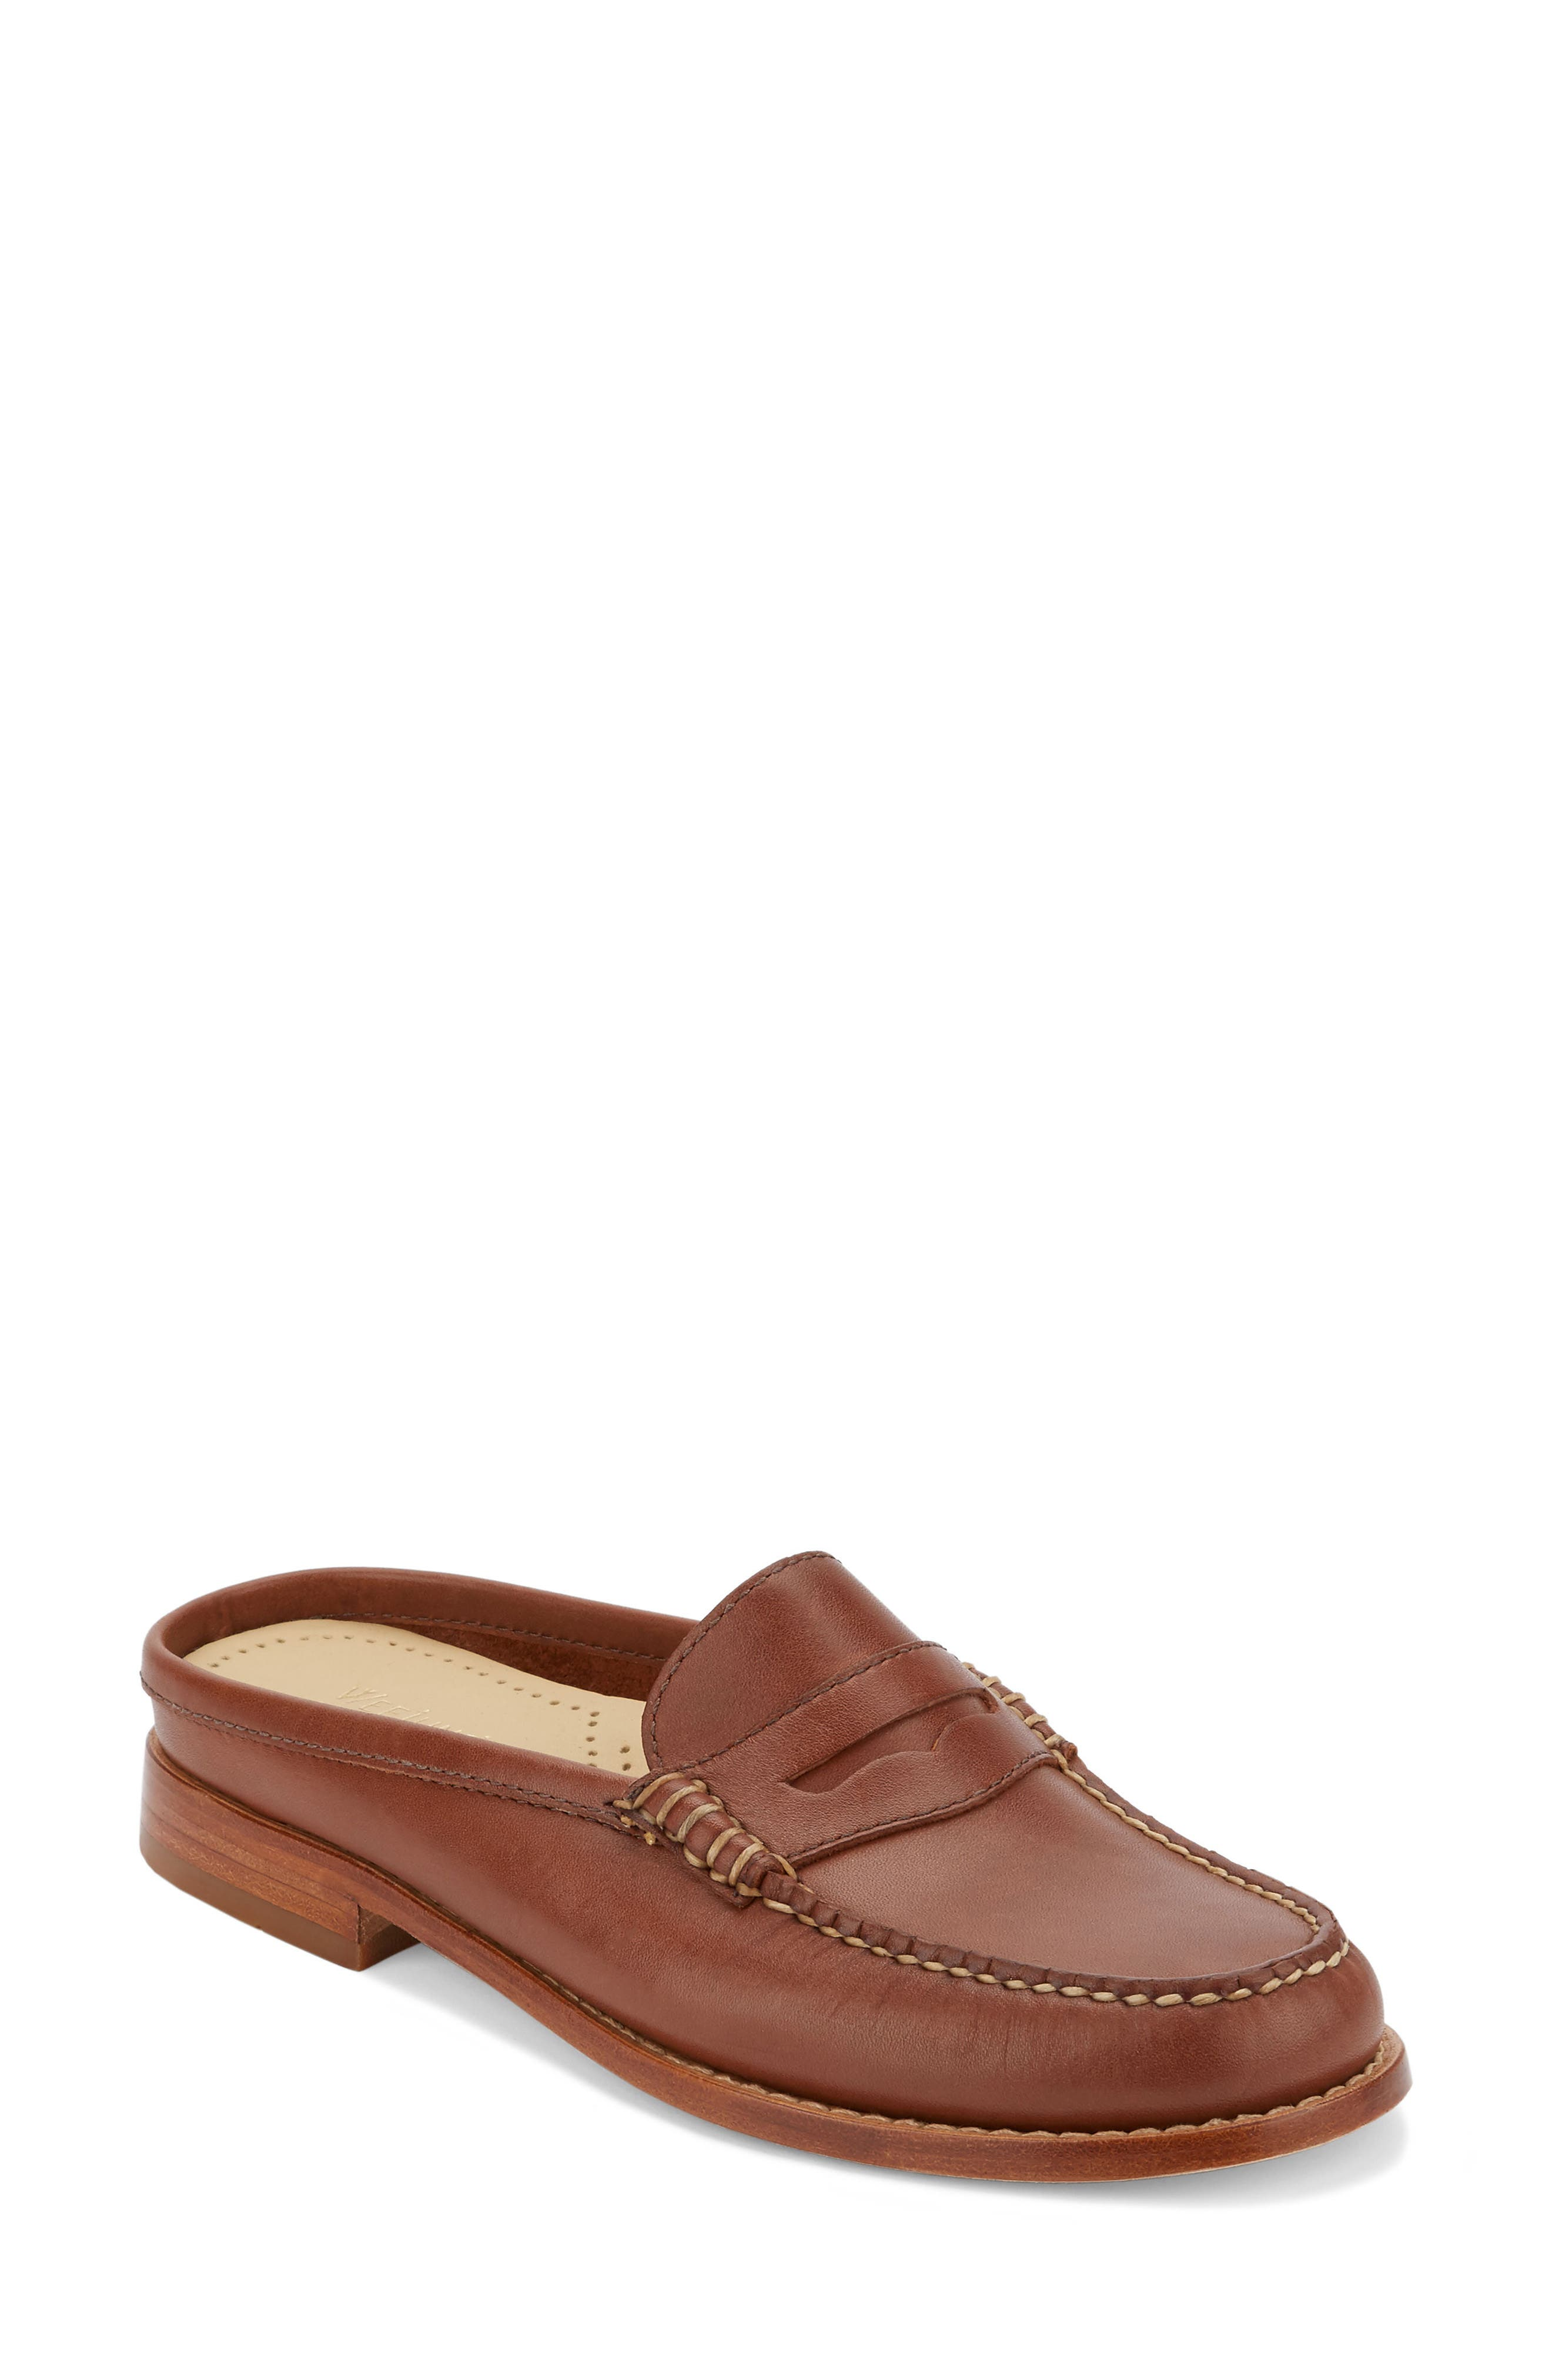 Alternate Image 1 Selected - G.H. Bass & Co. Wynn Loafer Mule (Women)